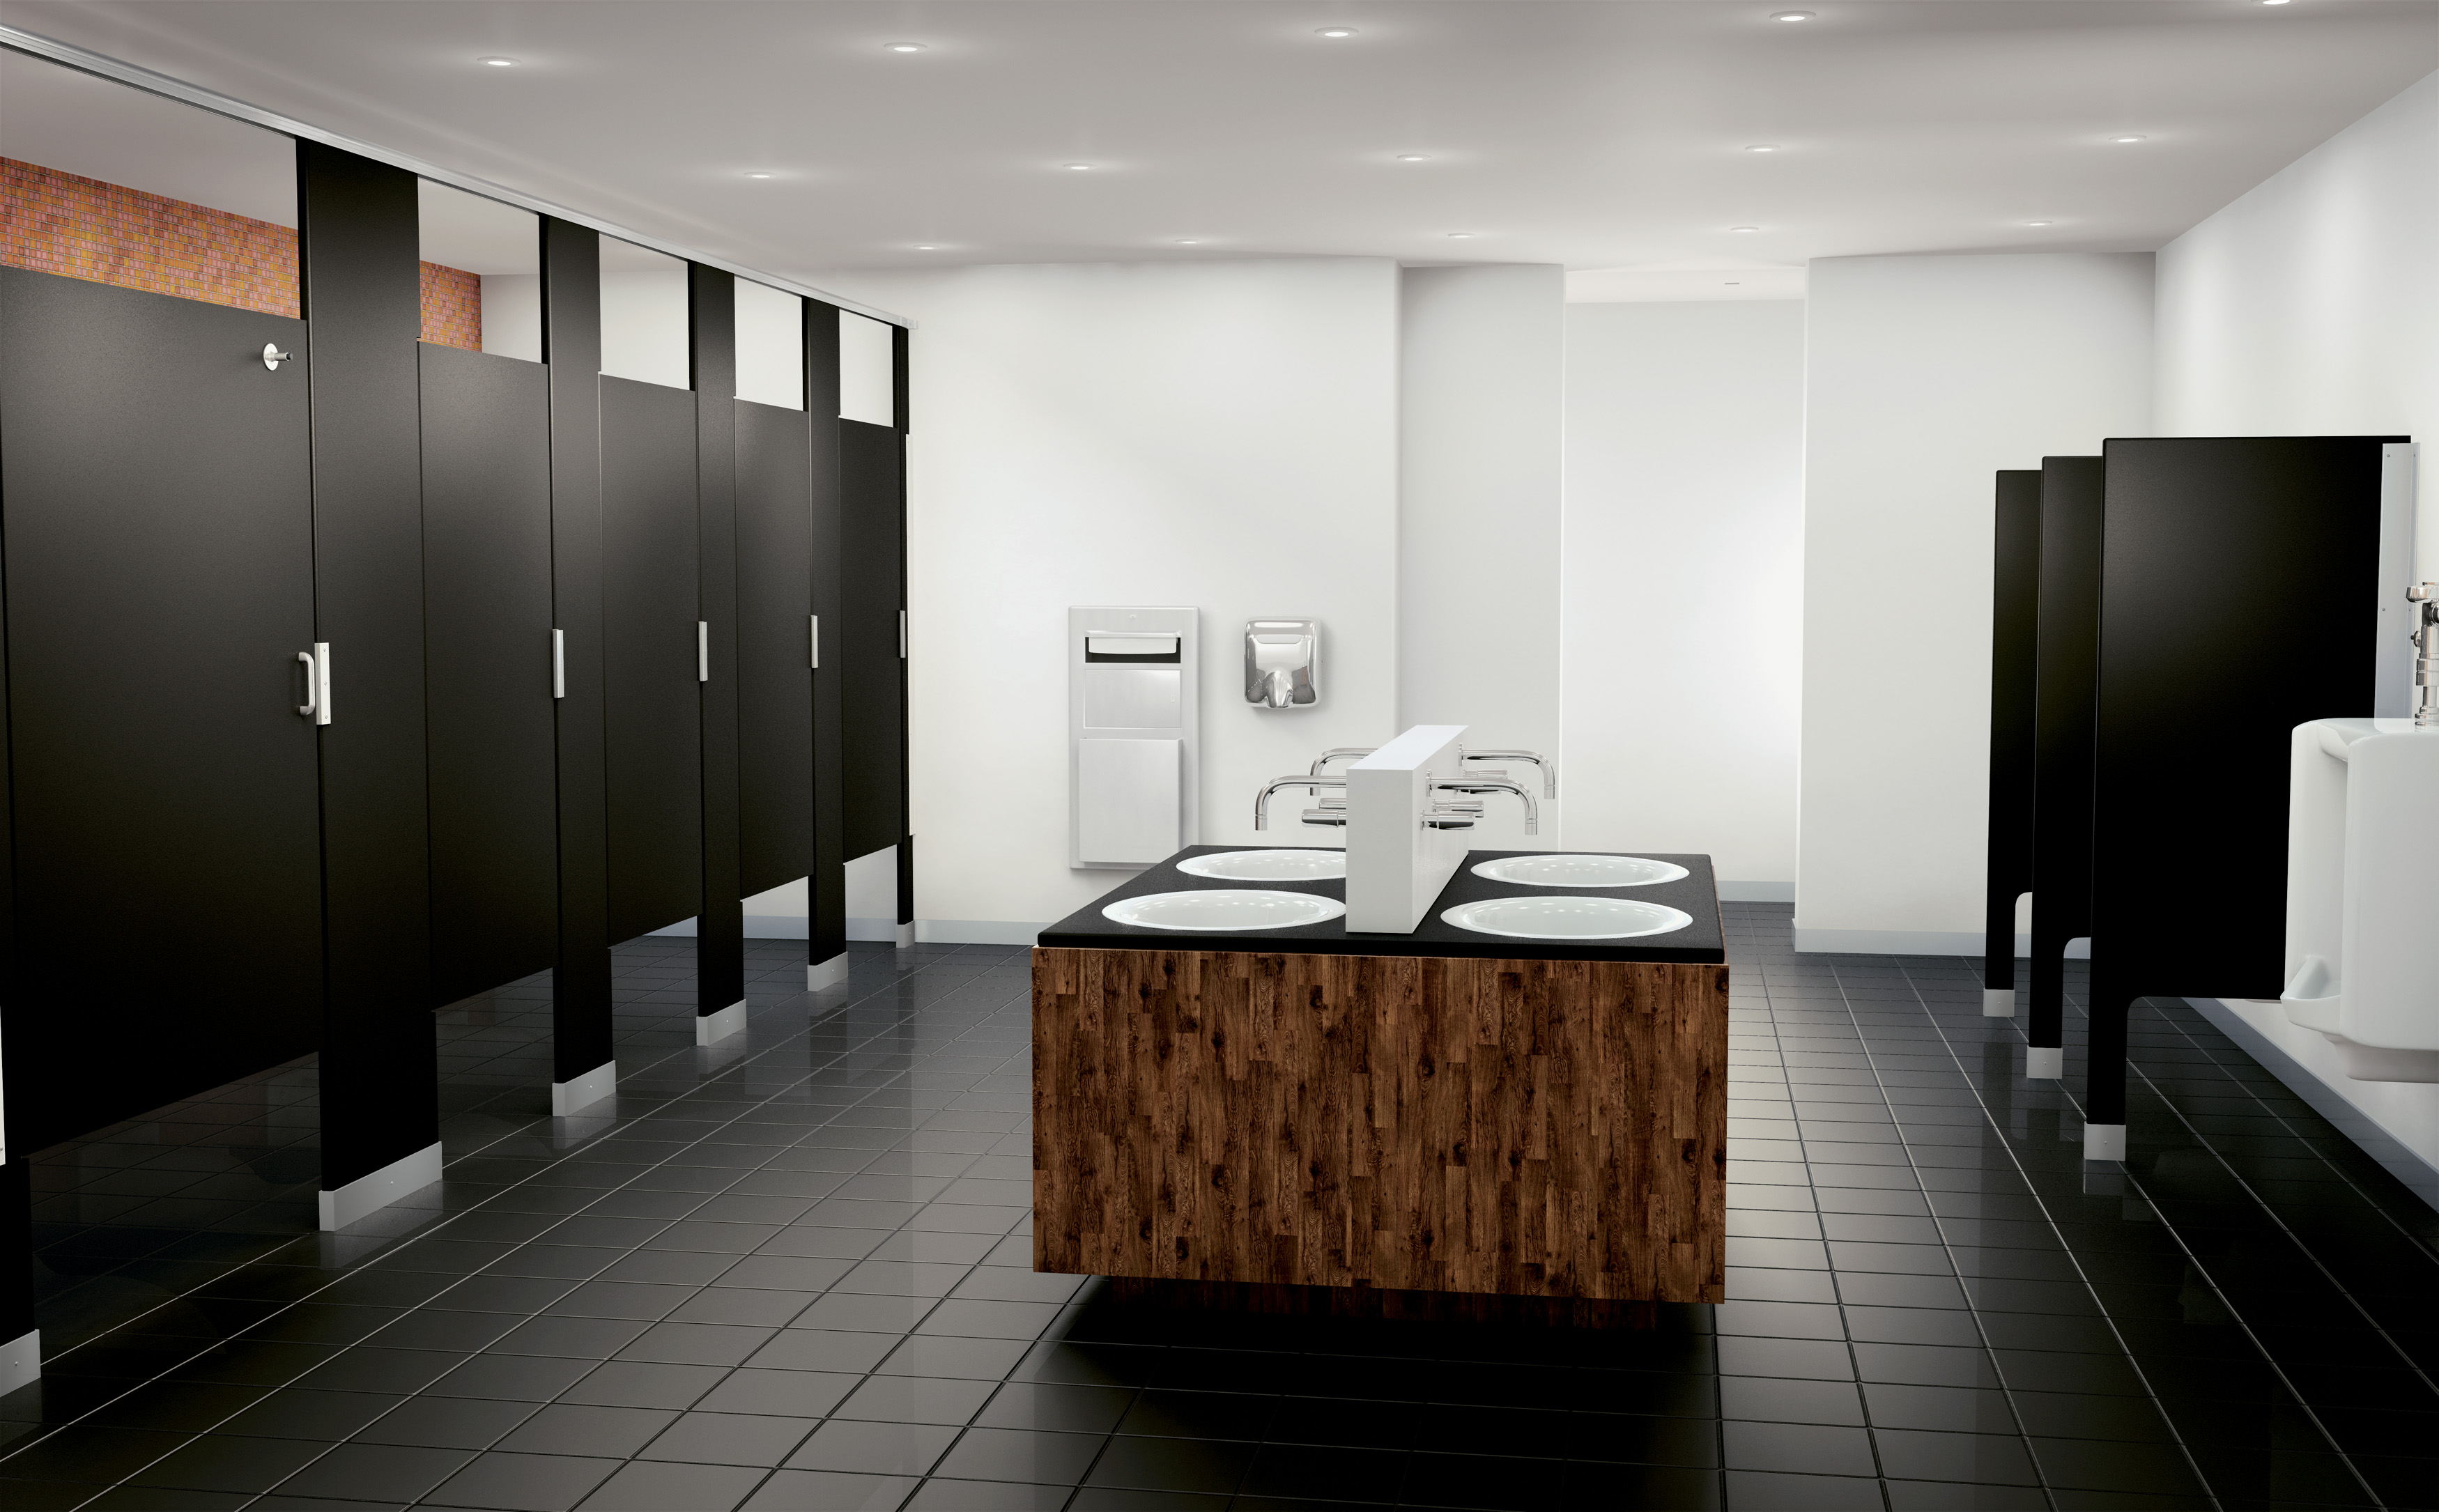 Bathroom Partitions Memphis Tn scranton products scranton, pennsylvania, pa 18505